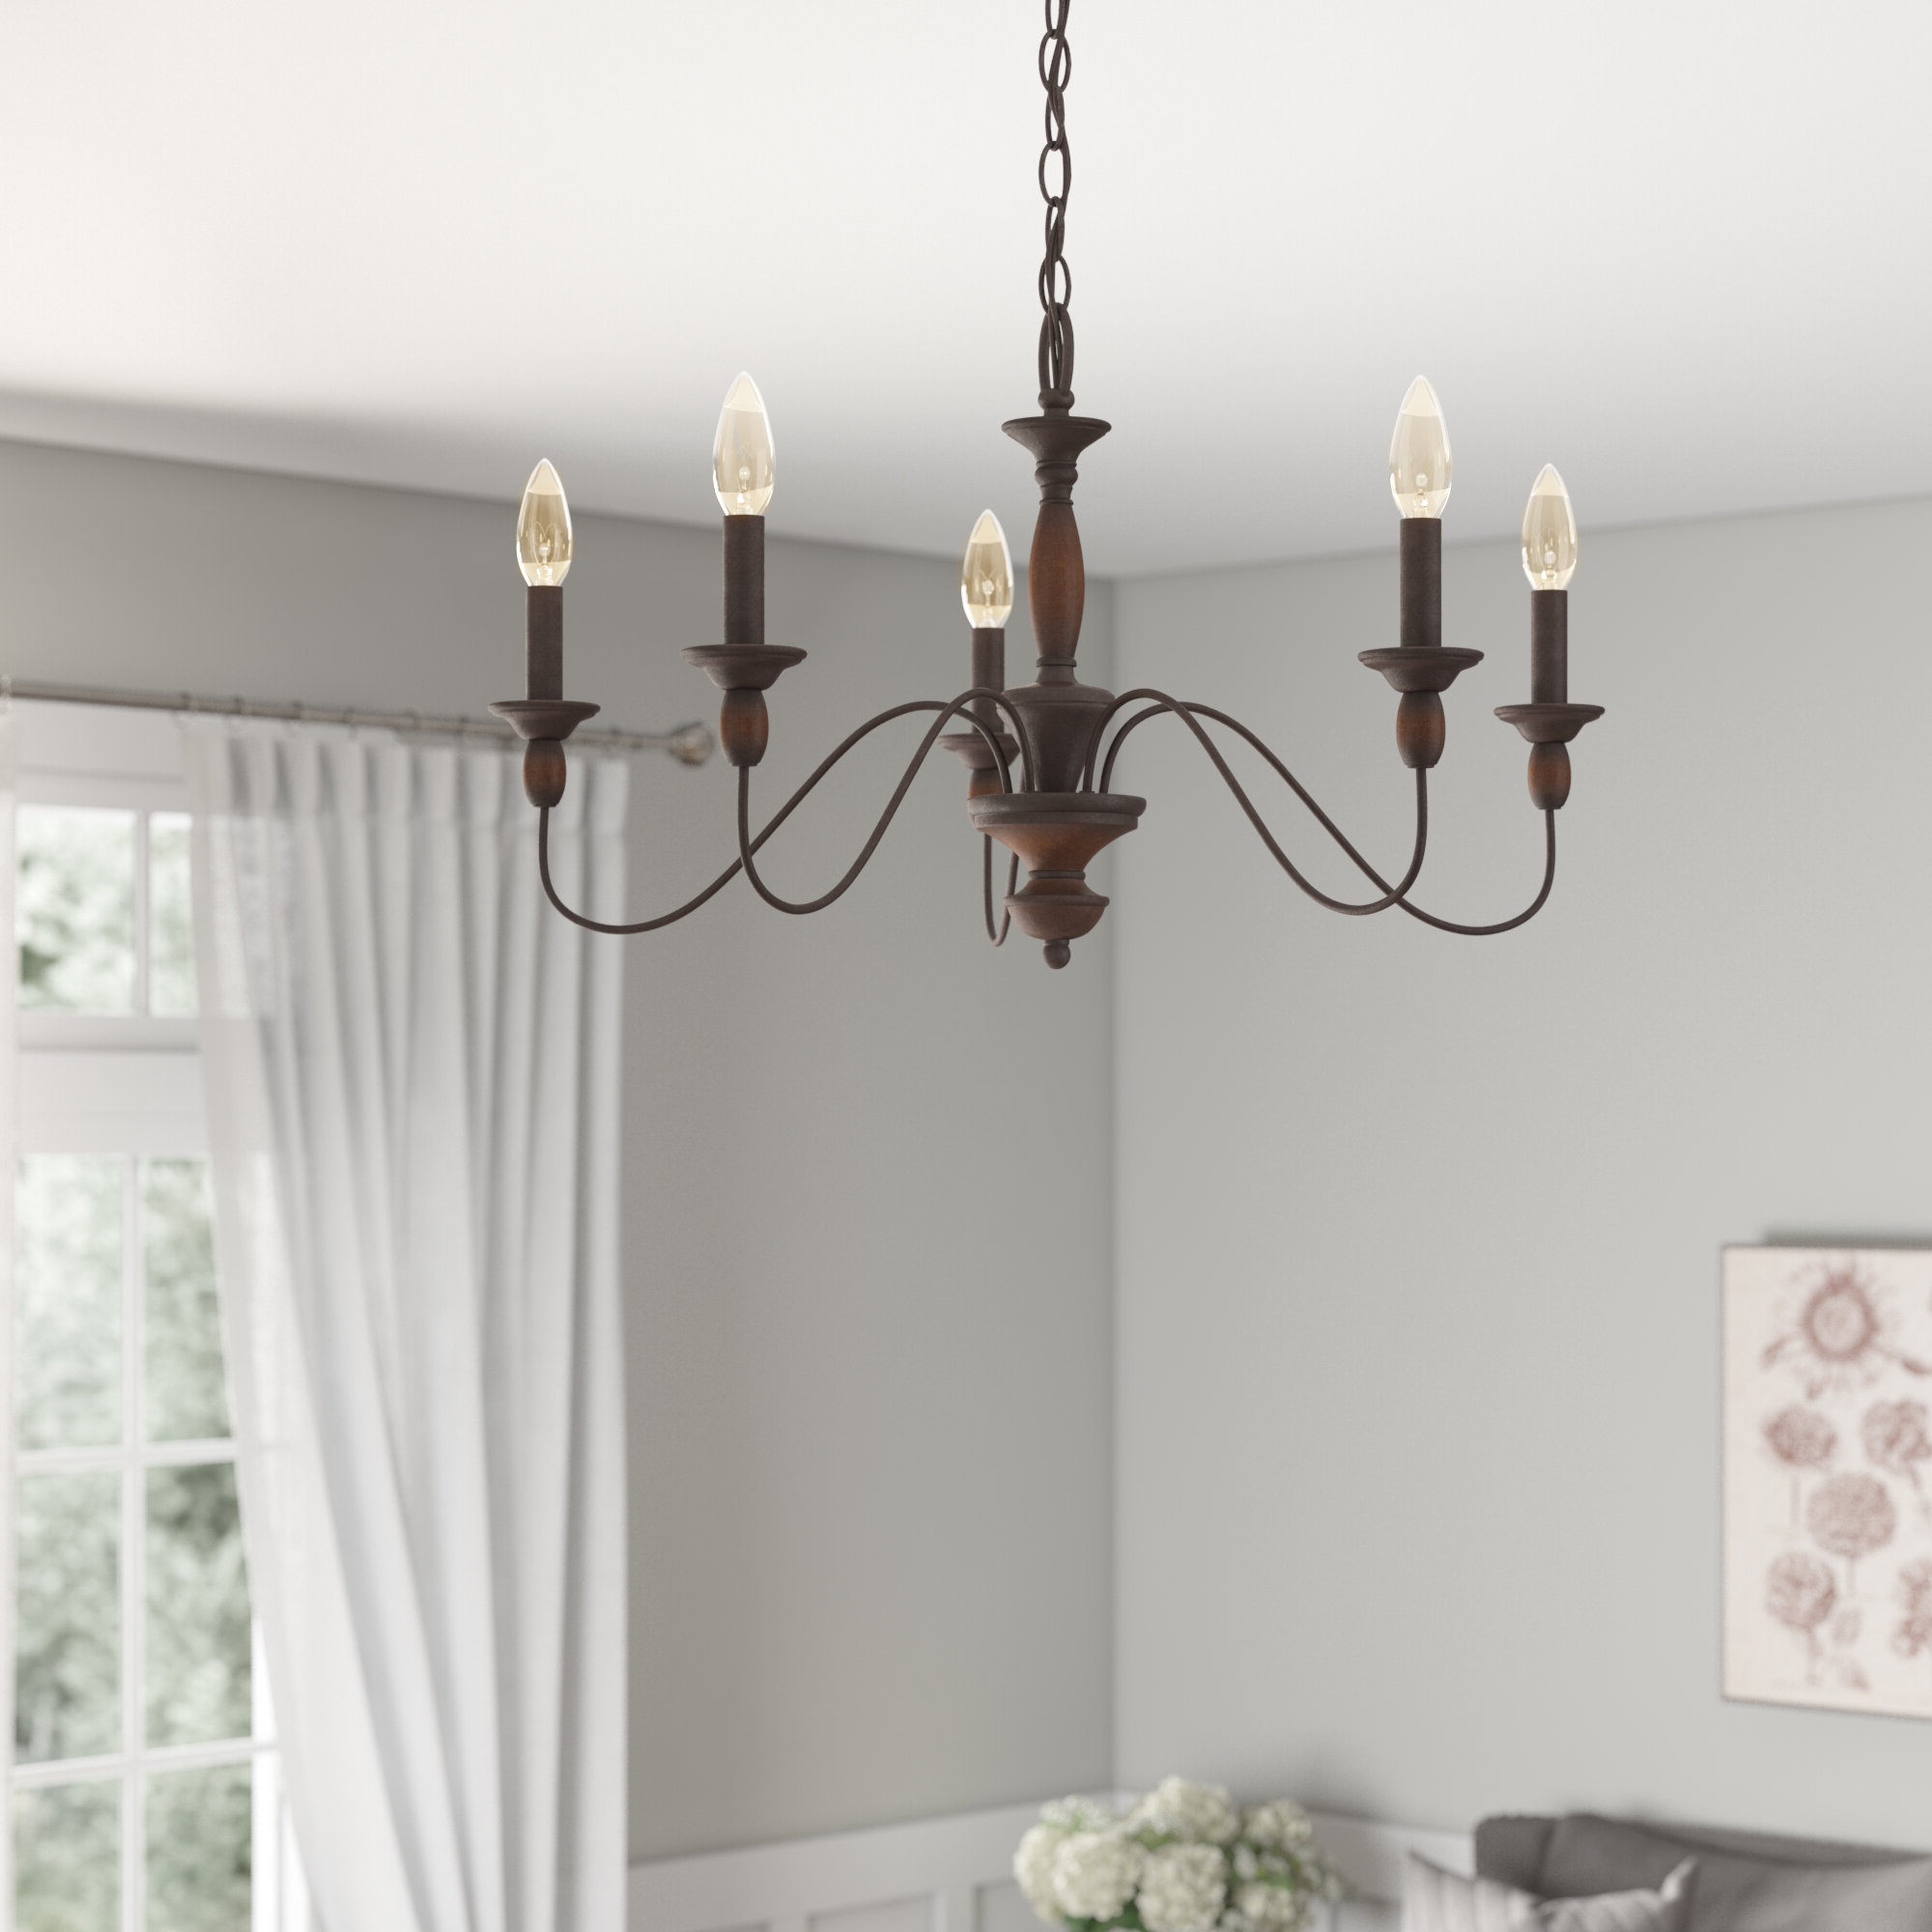 Shaylee 5 Light Candle Style Chandeliers Intended For Most Recently Released Sarah 5 Light Candle Style Chandelier (View 15 of 20)